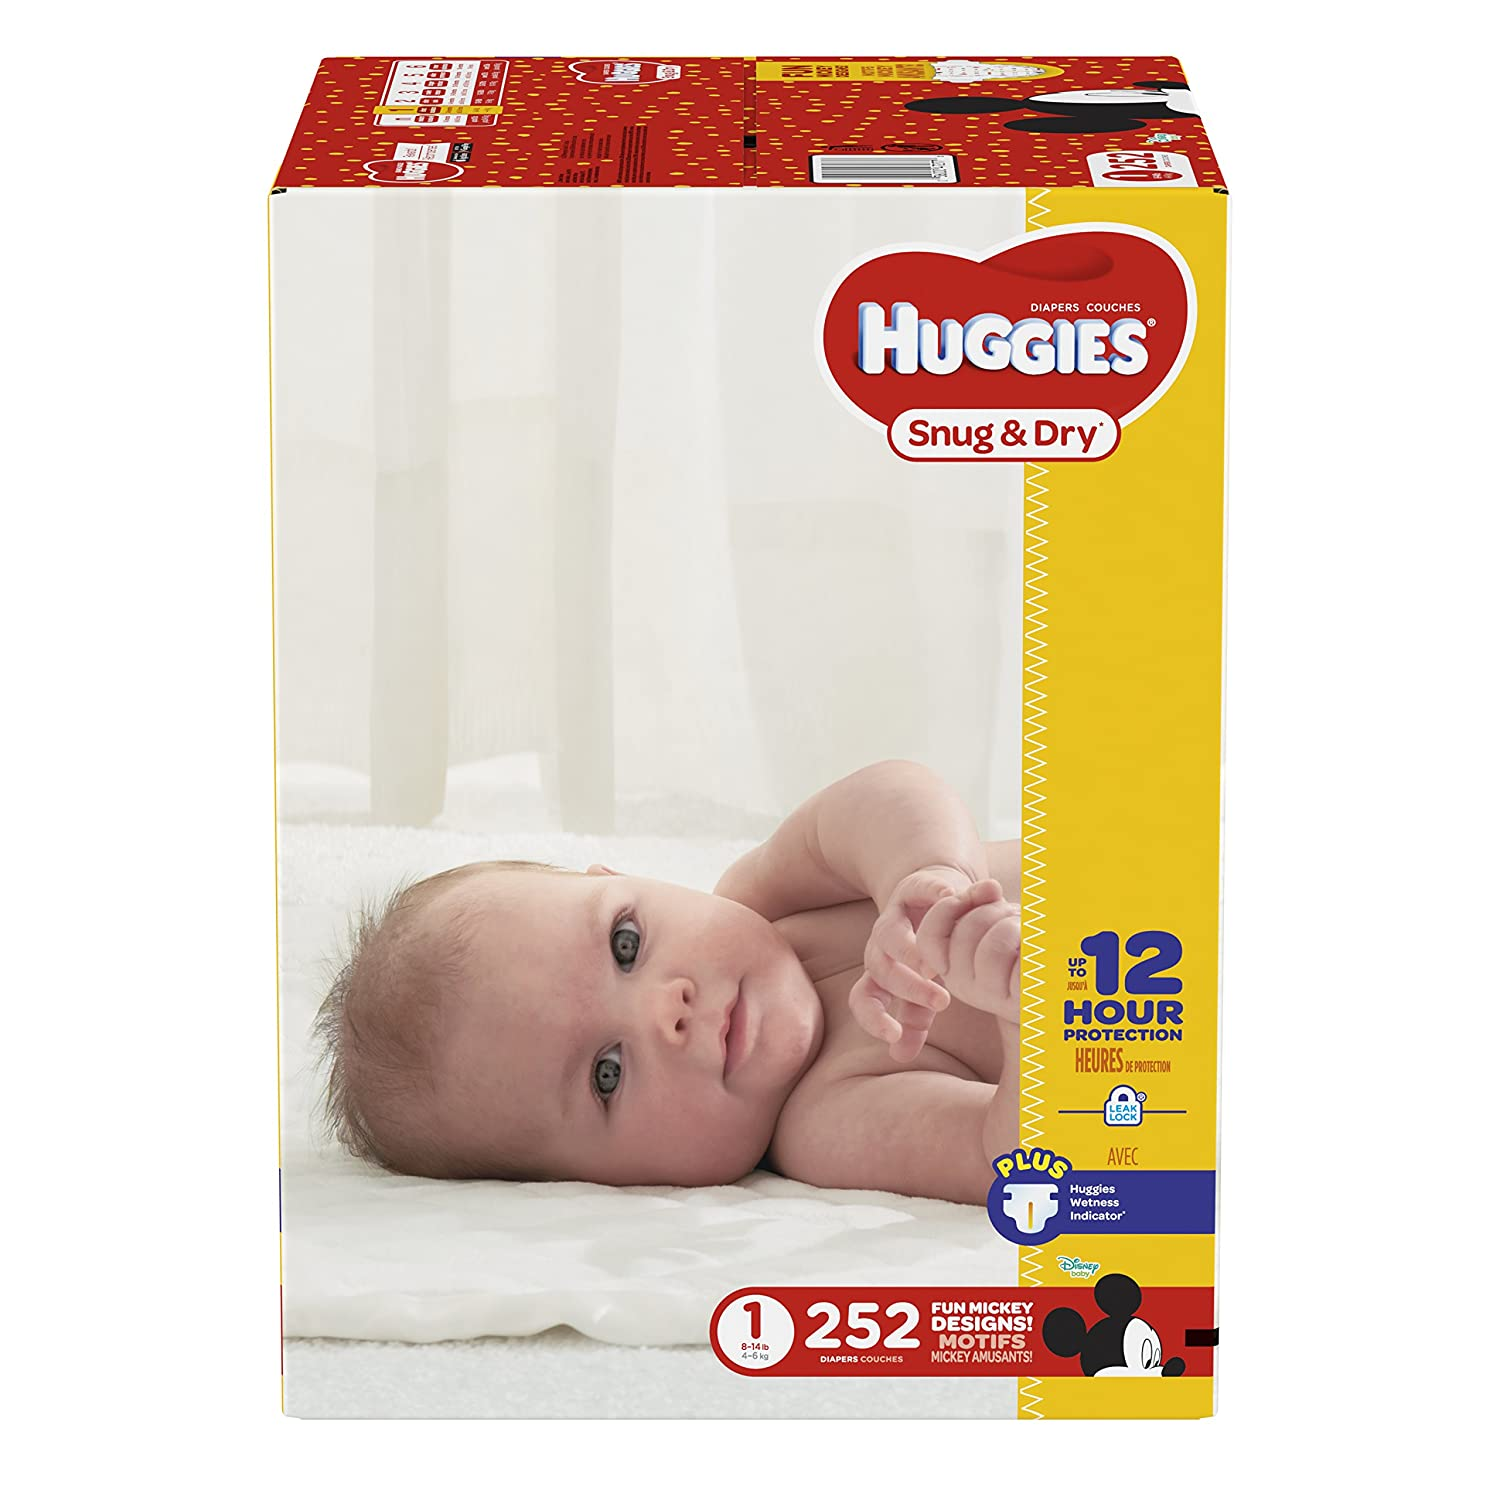 fed67122a HUGGIES Snug & Dry Diapers, Size 1, 252 Count: Amazon.ca: Health & Personal  Care